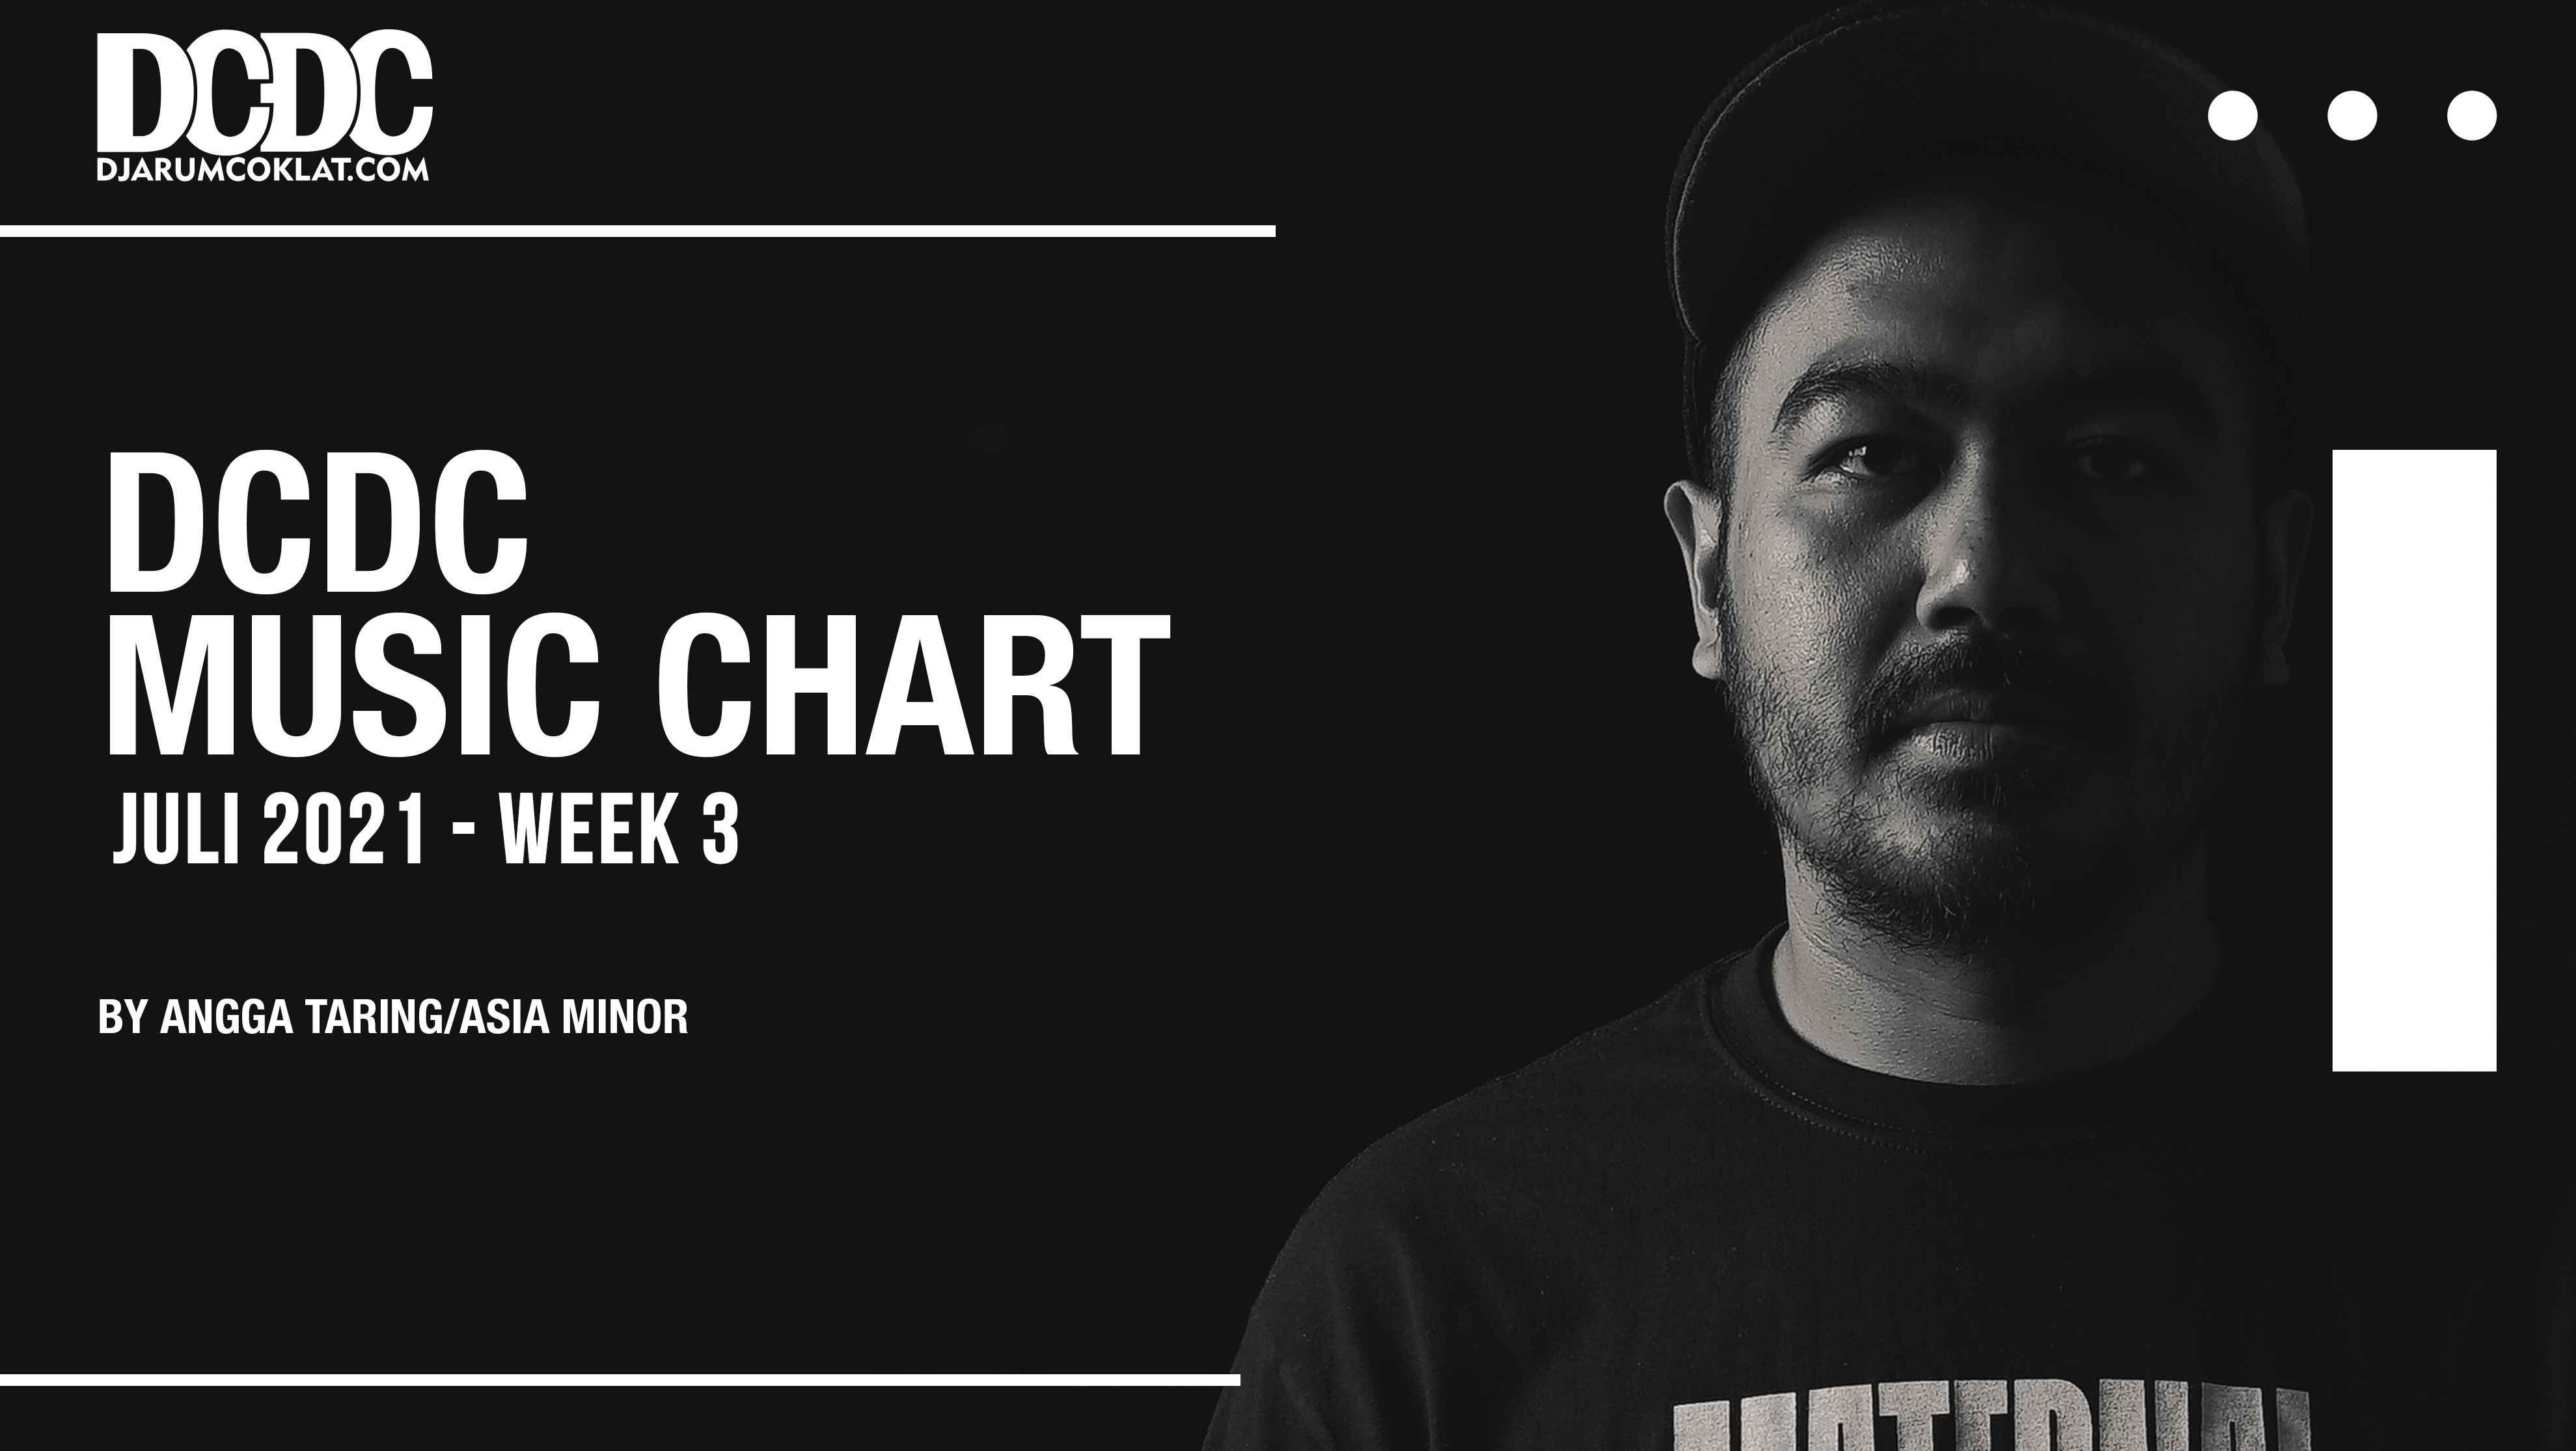 DCDC Music Chart - #4th Week of July 2021